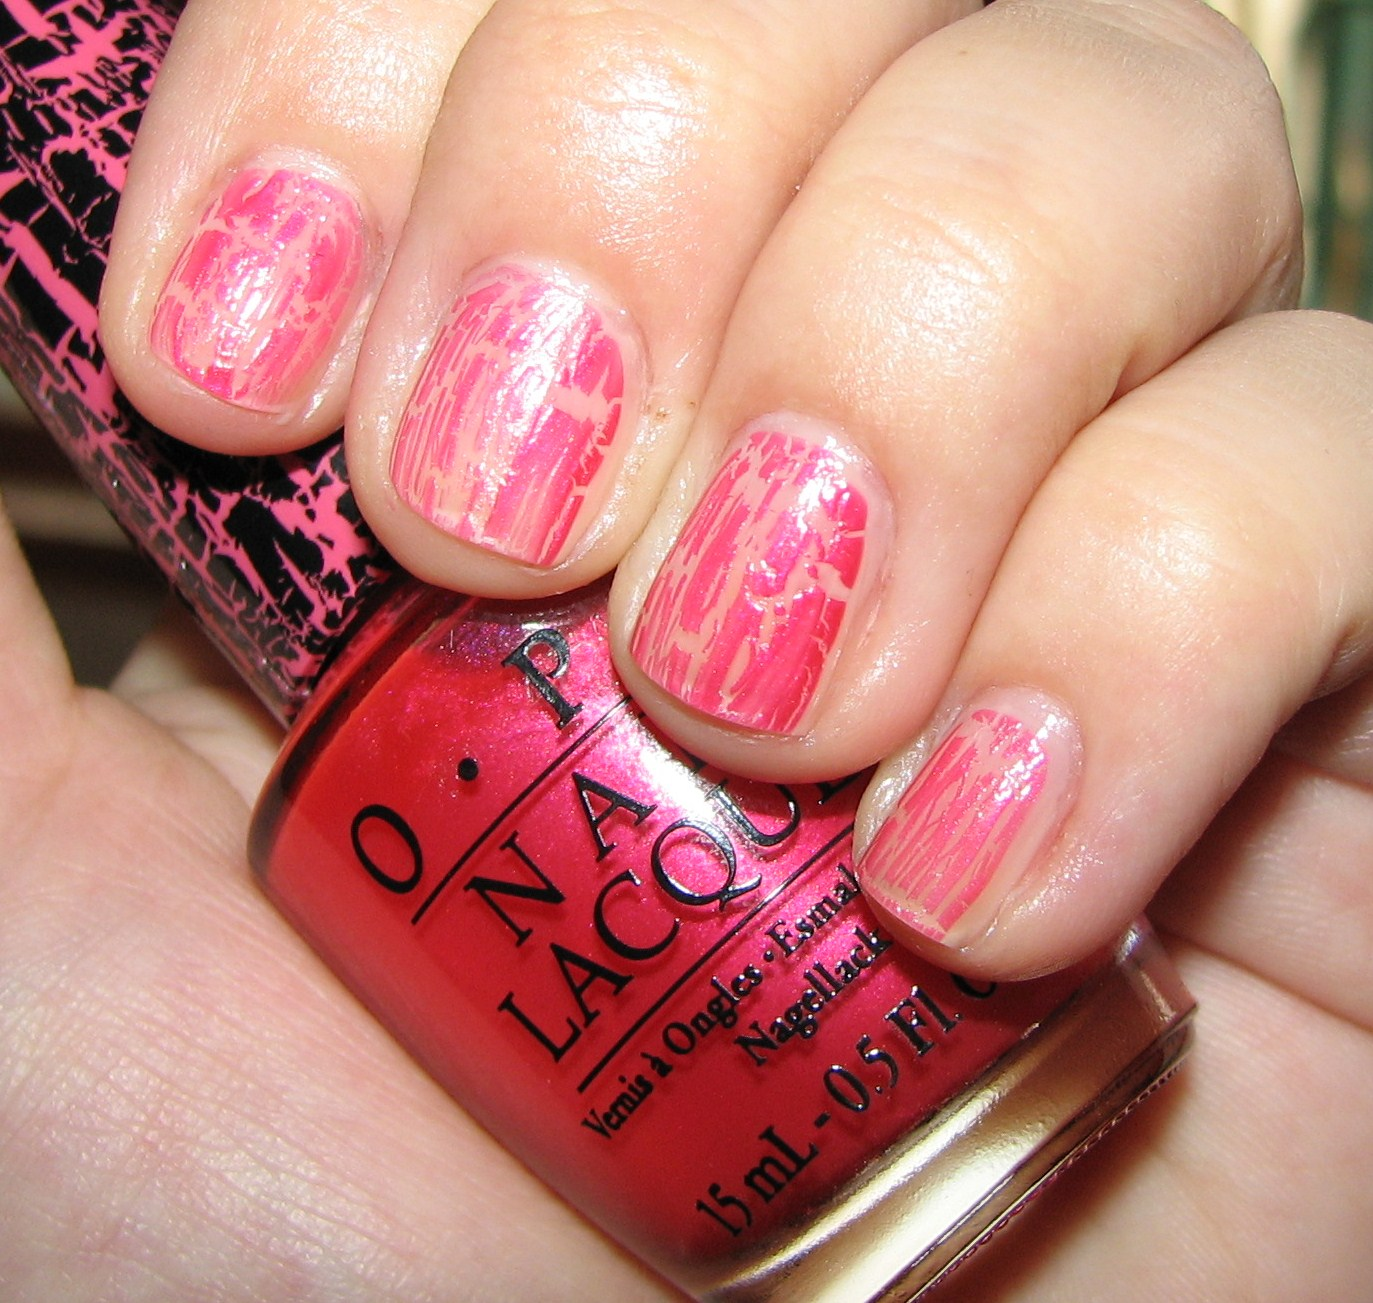 OPI Pink Shatter Nail Polish Swatches and Review - Blushing Noir